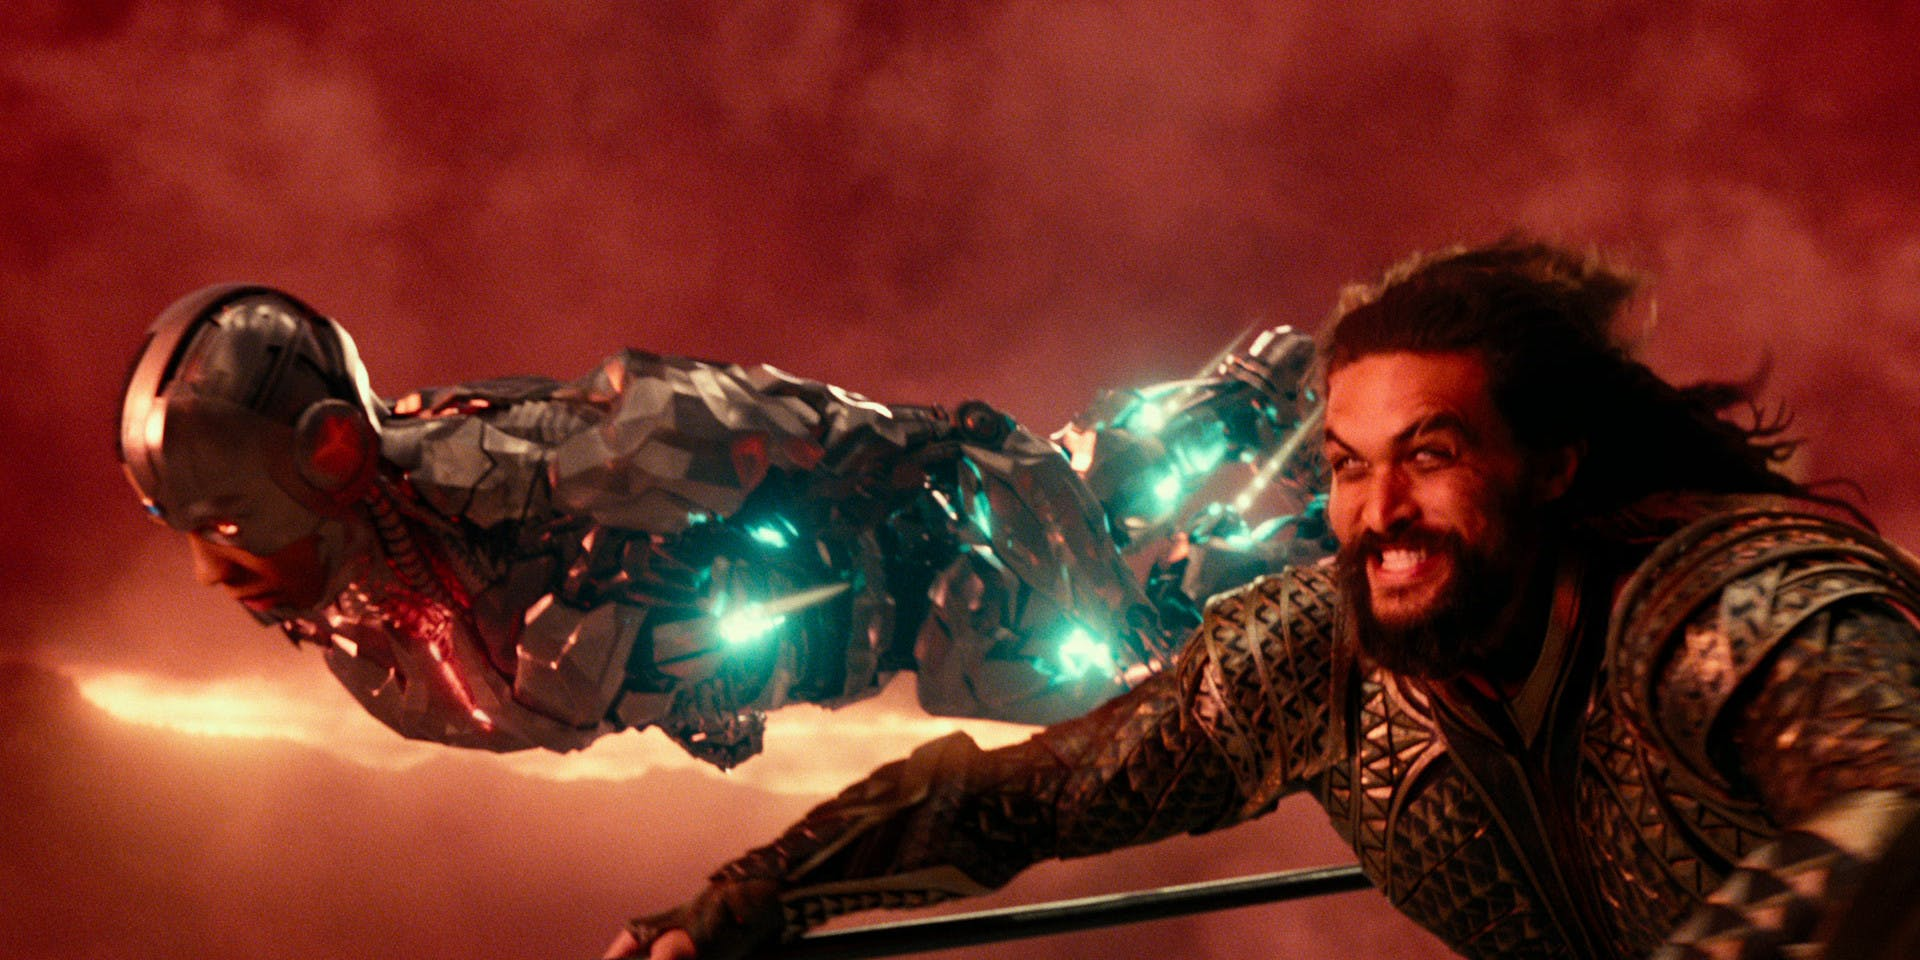 justice-league-jason-momoa-announces-aquaman